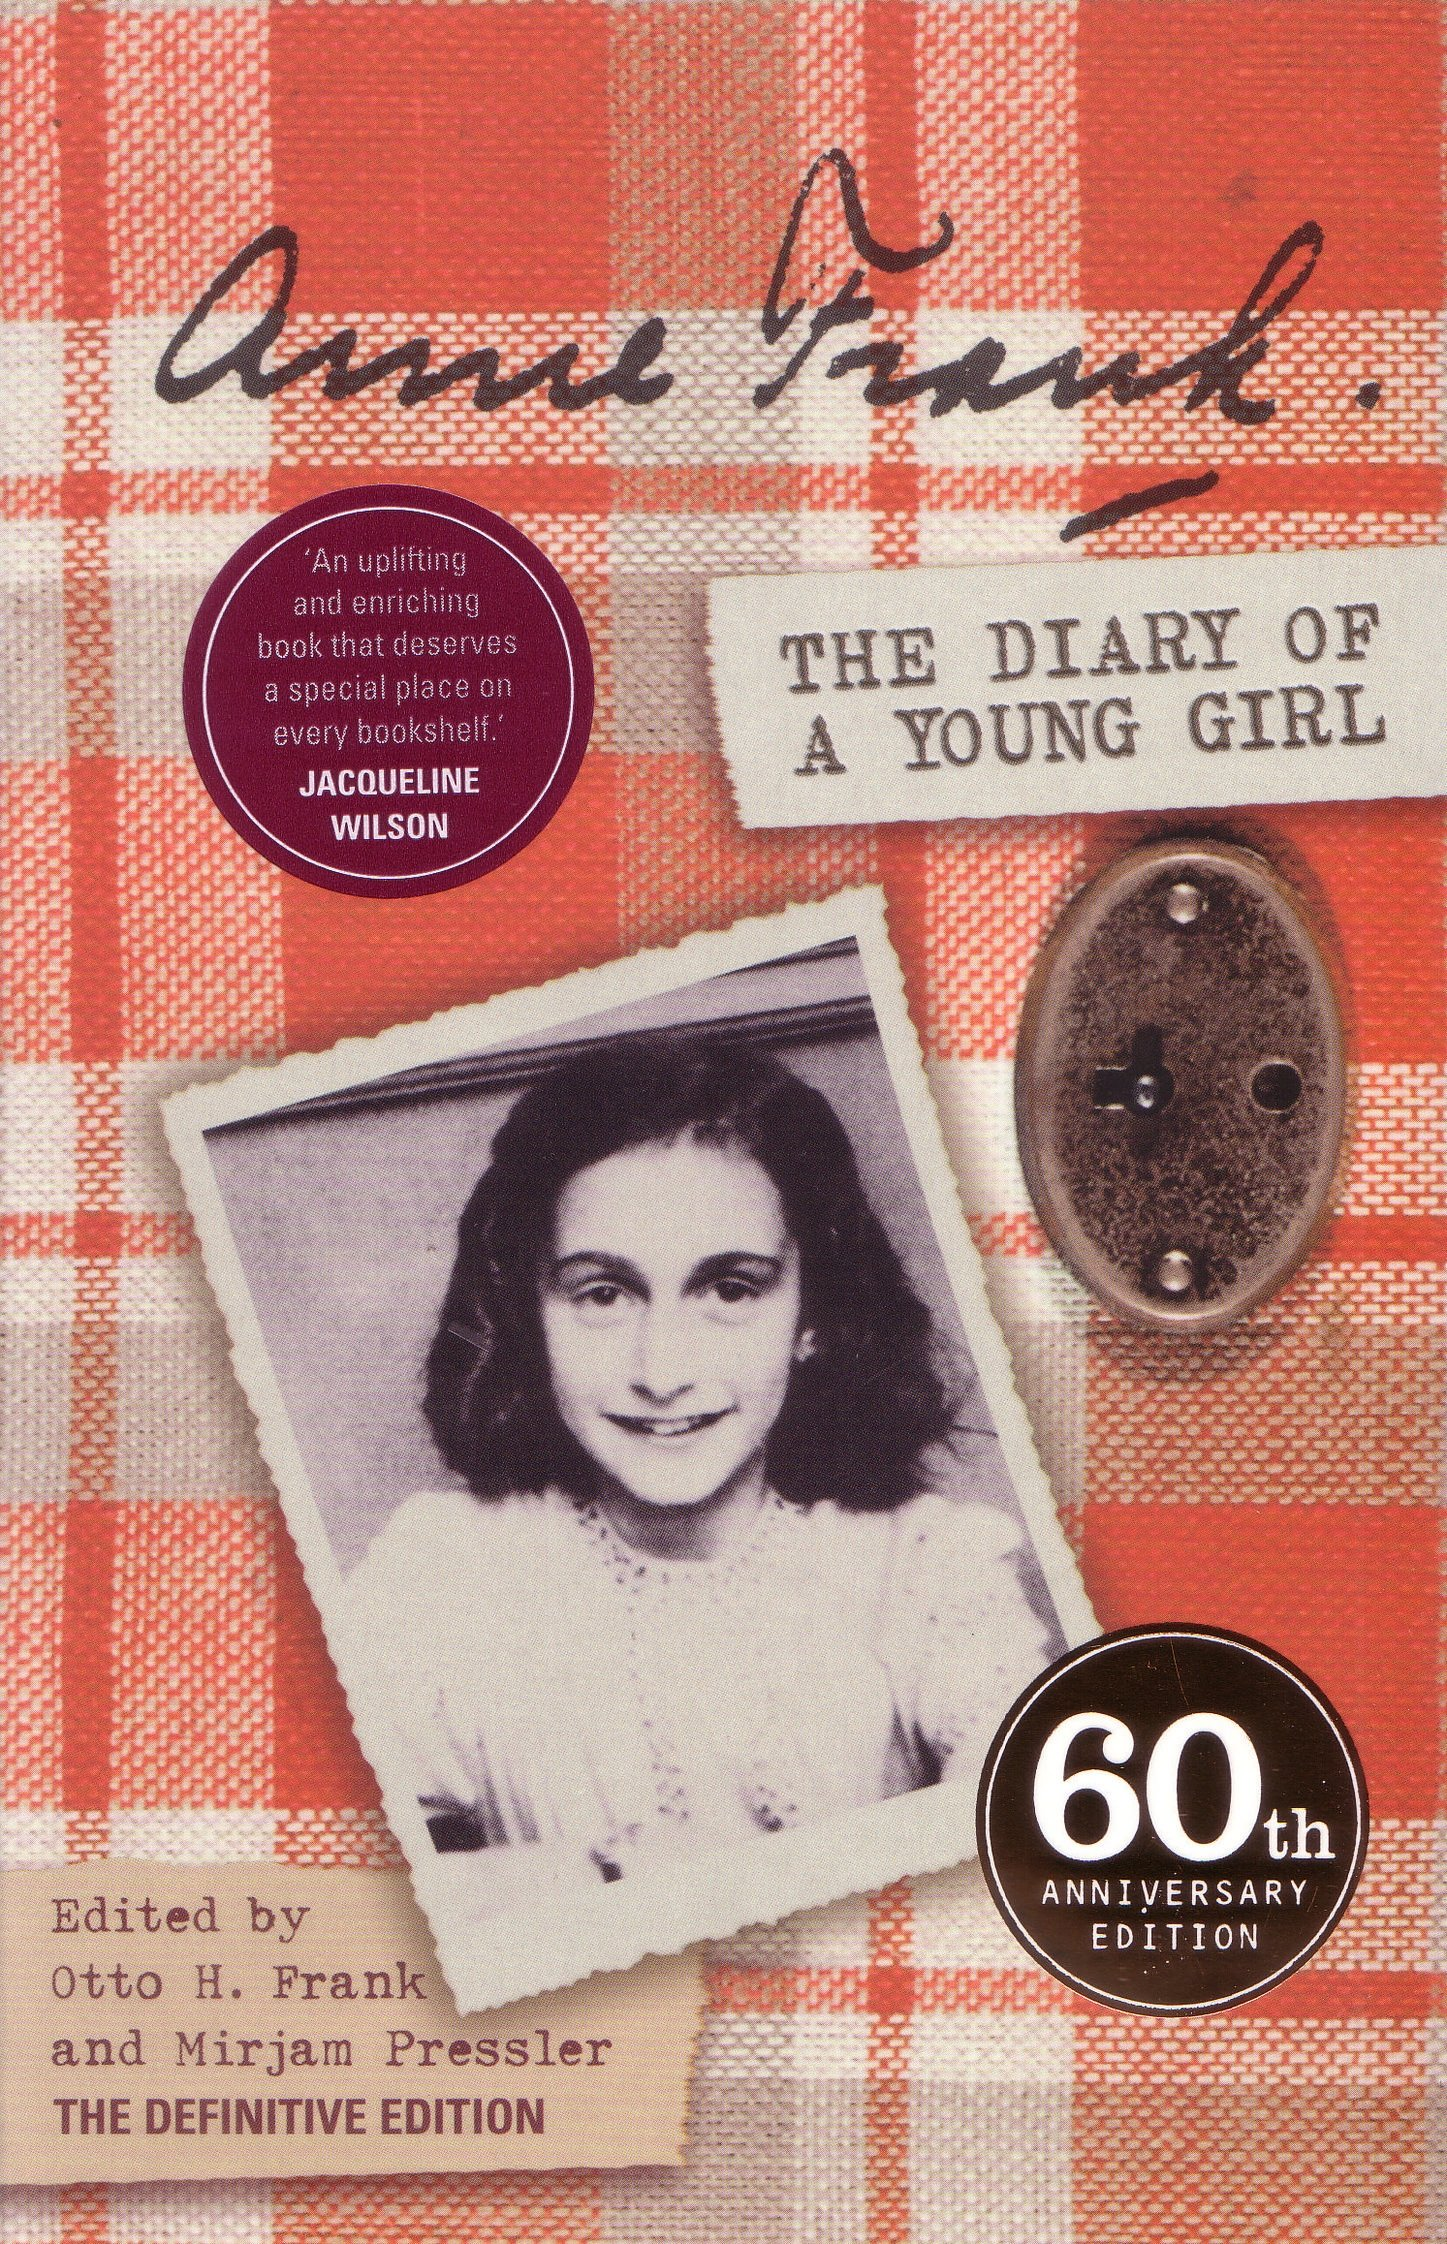 Sách - The Diary of a Young Girl: Definitive Edition (Puffin modern classics) - Phương Nam Book